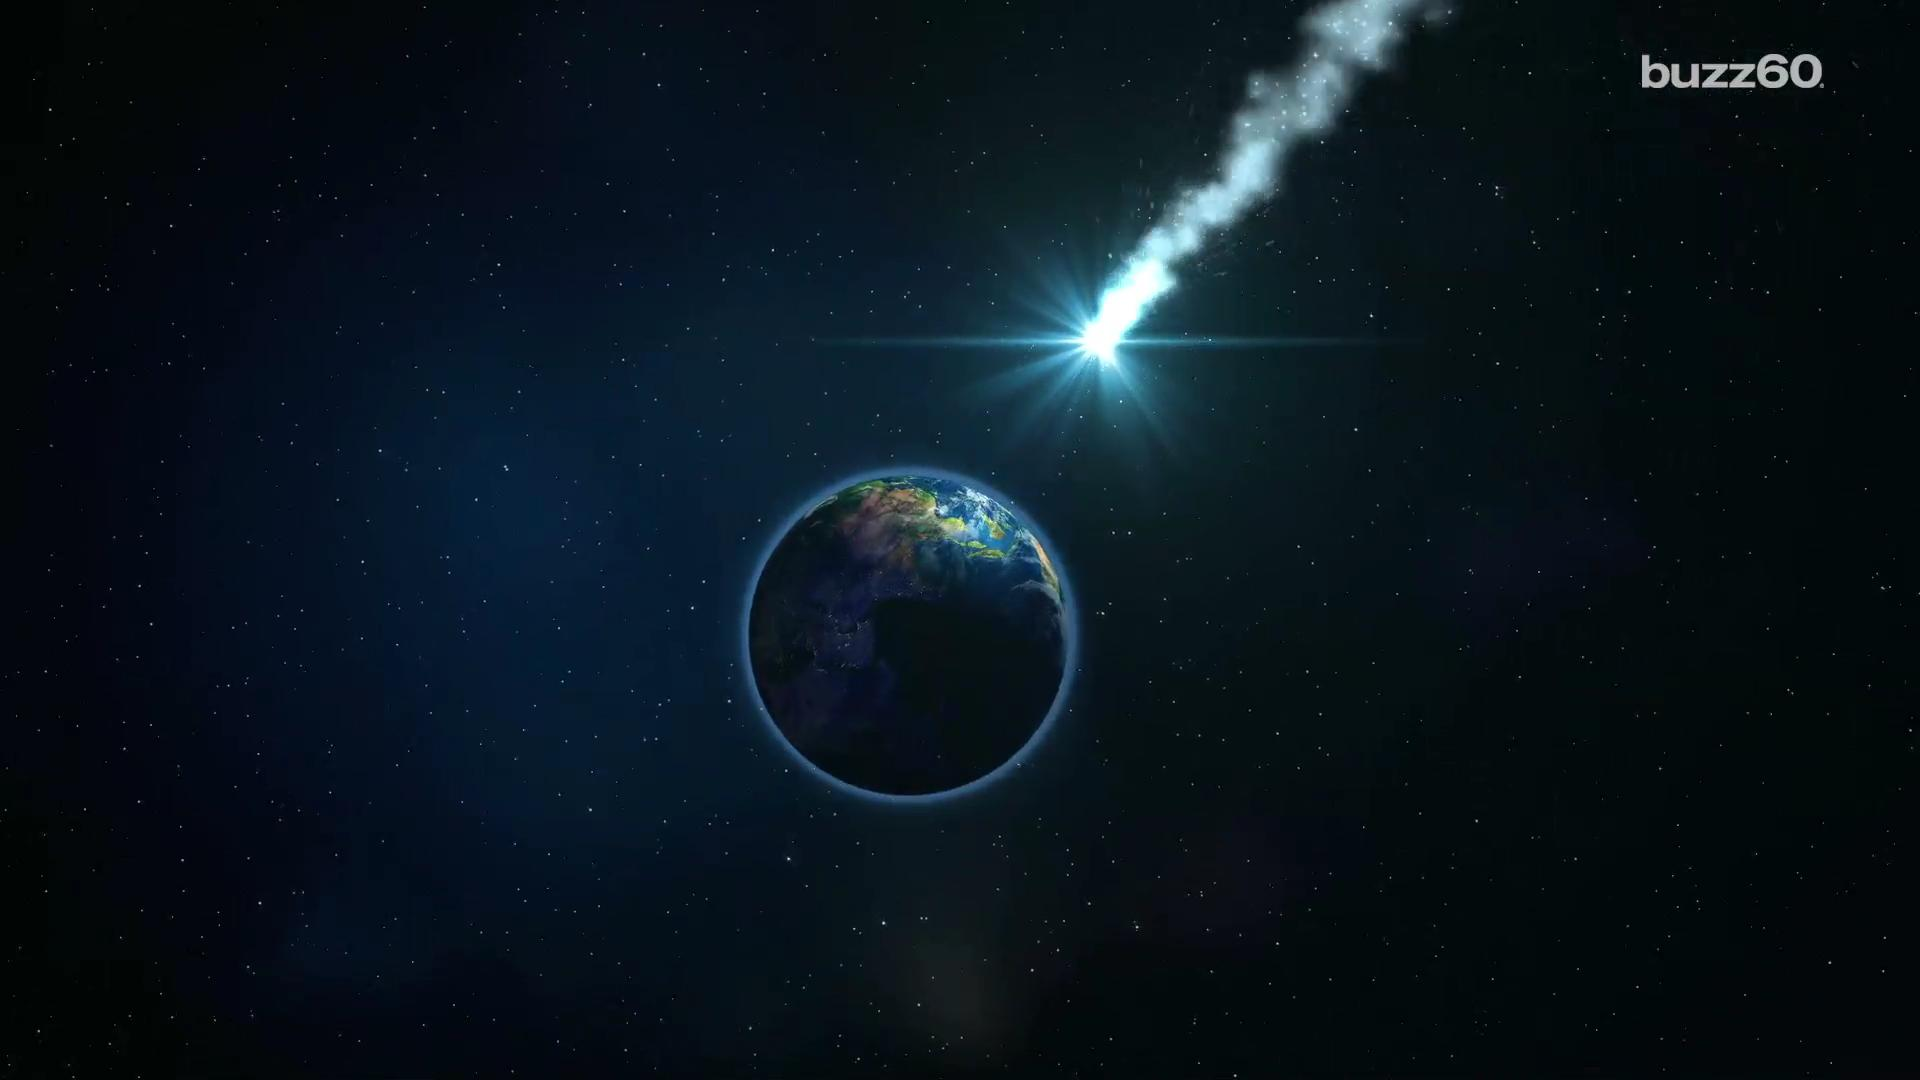 Nasa says an asteroid is not about to hit earth